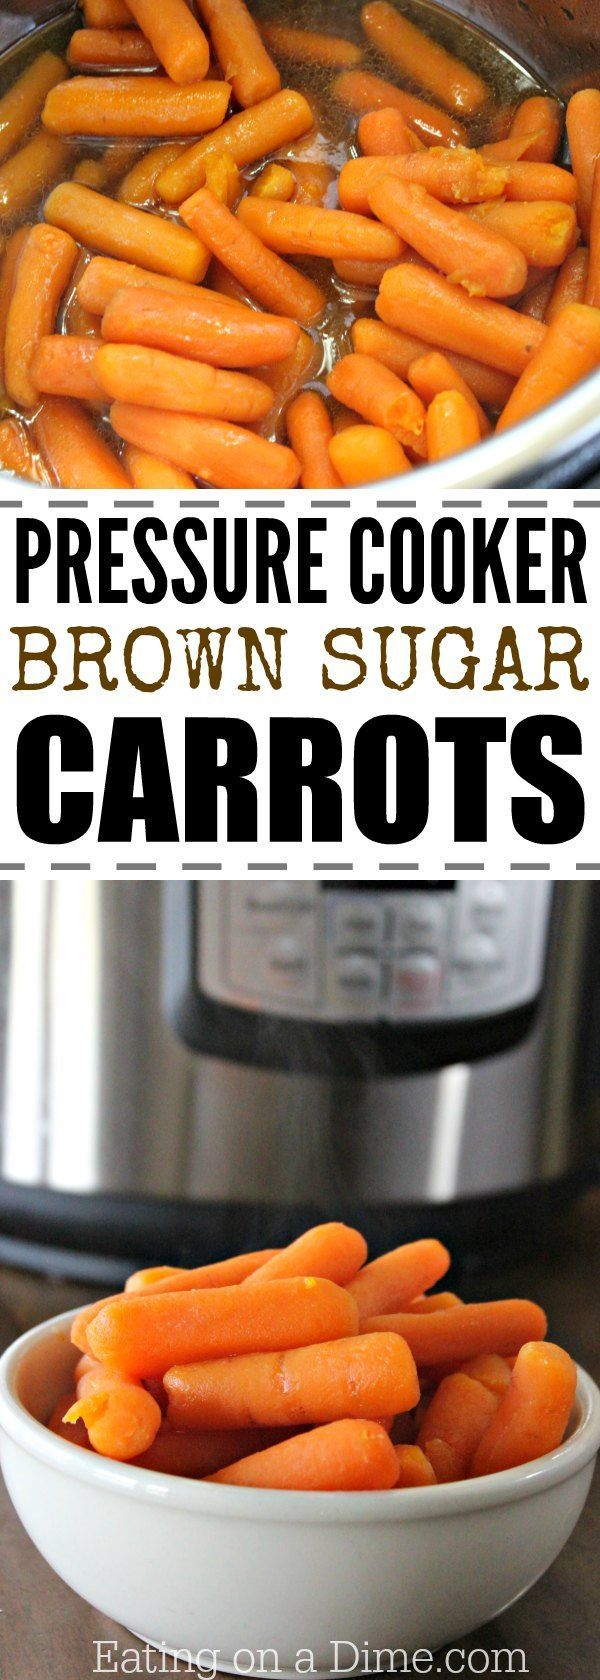 Looking for a sweet carrots recipe? Try this Brown Sugar Carrots pressure cooker recipe. This simple pressure cooker carrots recipe tastes great. It is our favorite kid friendly glazed carrots recipe. Enjoy!